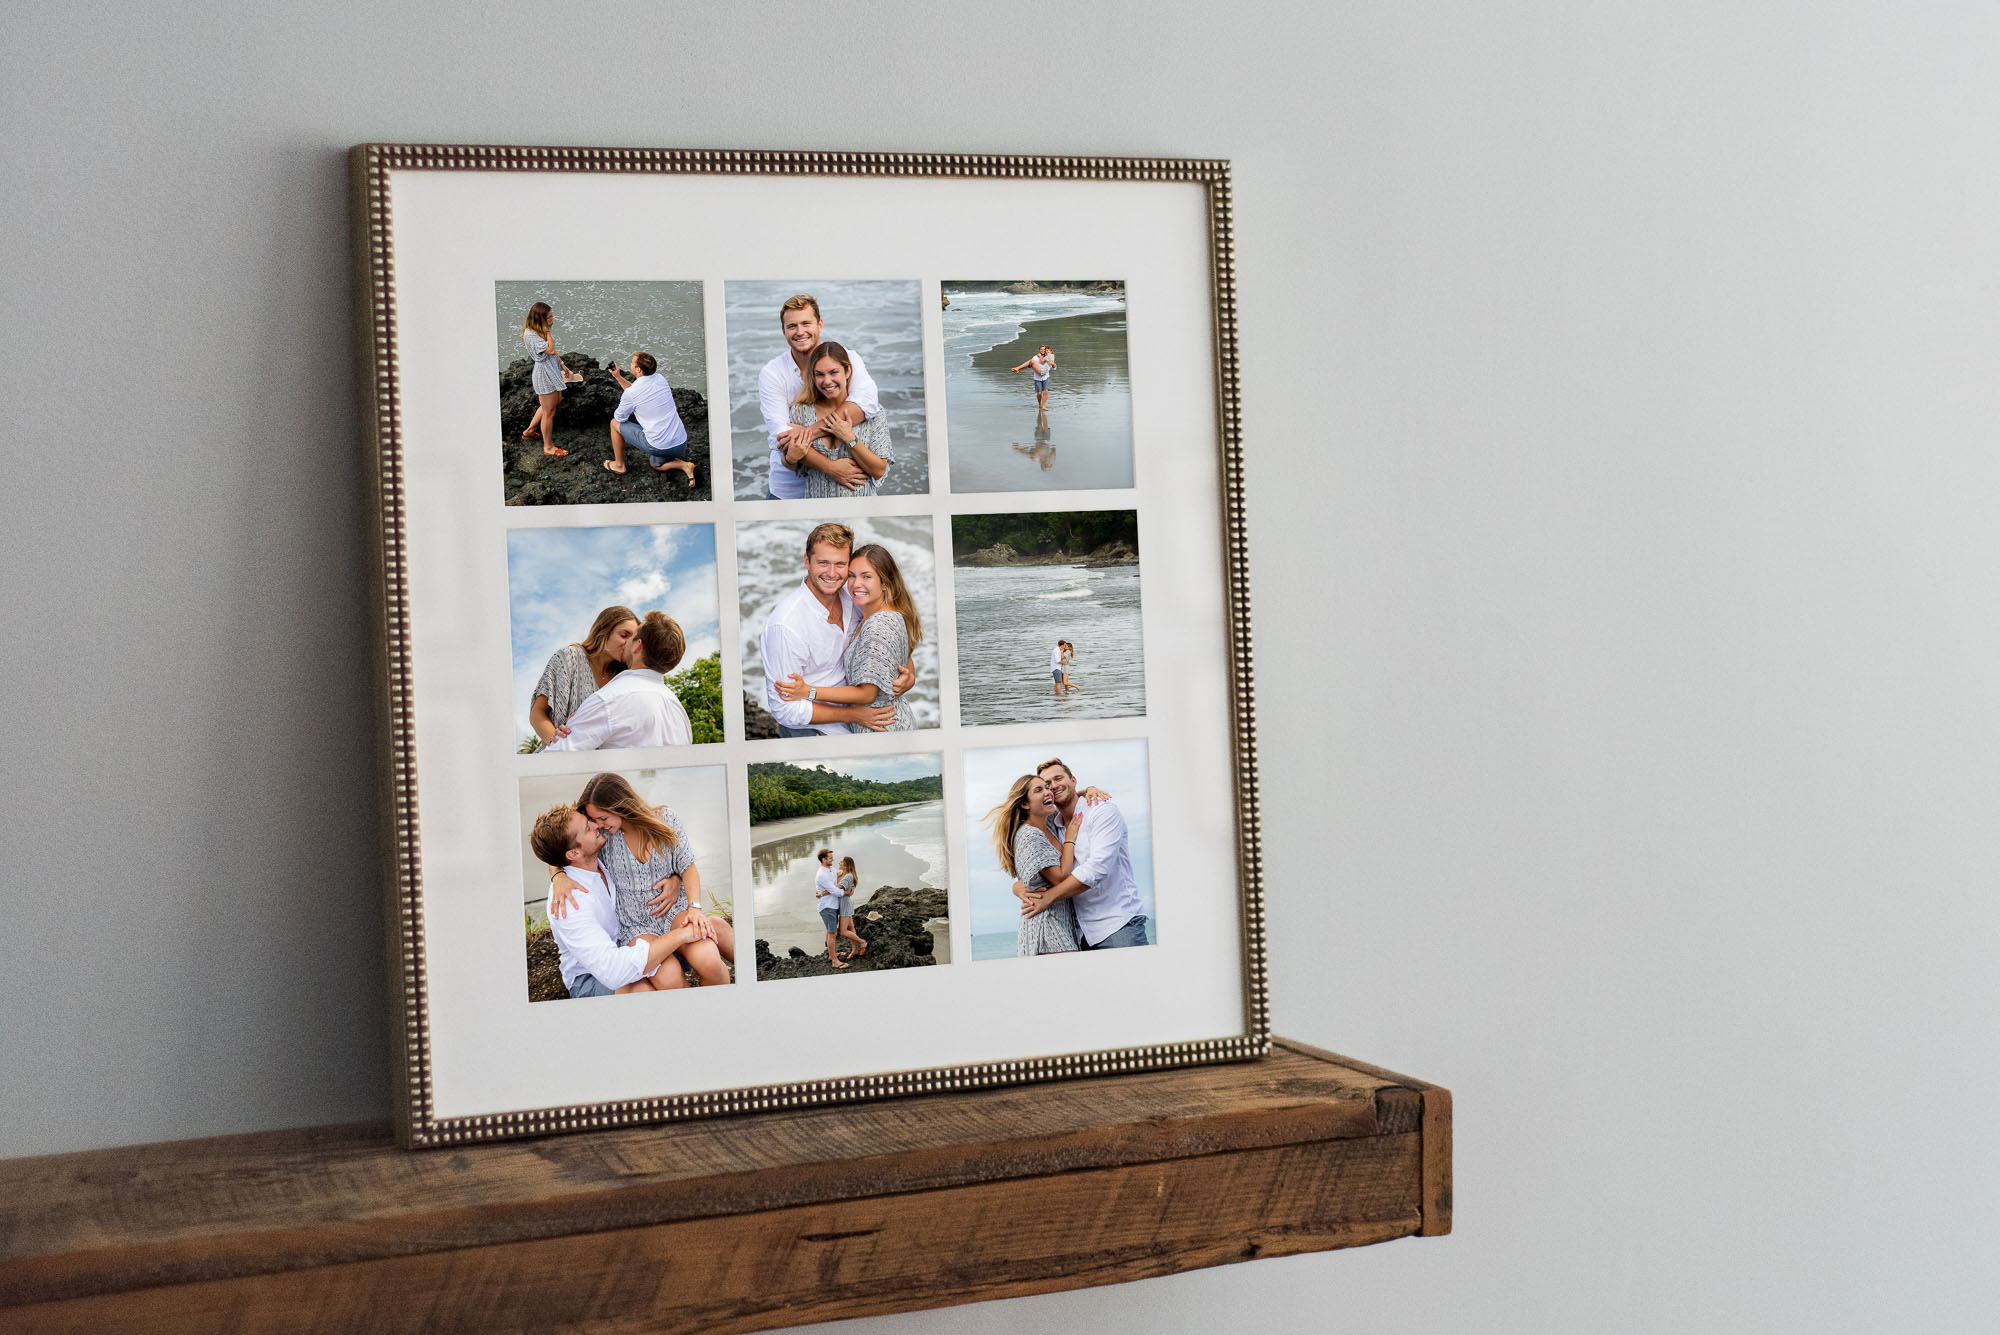 framed photo from portrait session